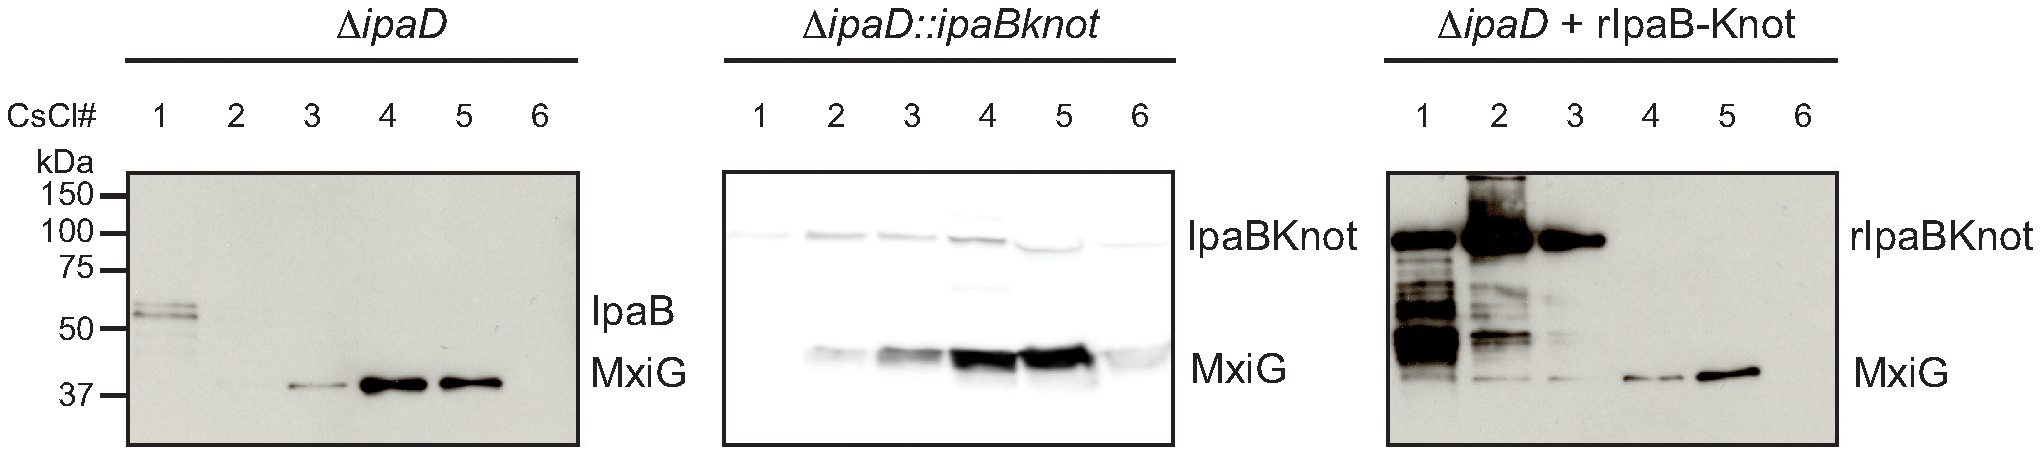 Co-localization of IpaB, IpaB-Knot and isolated NC.